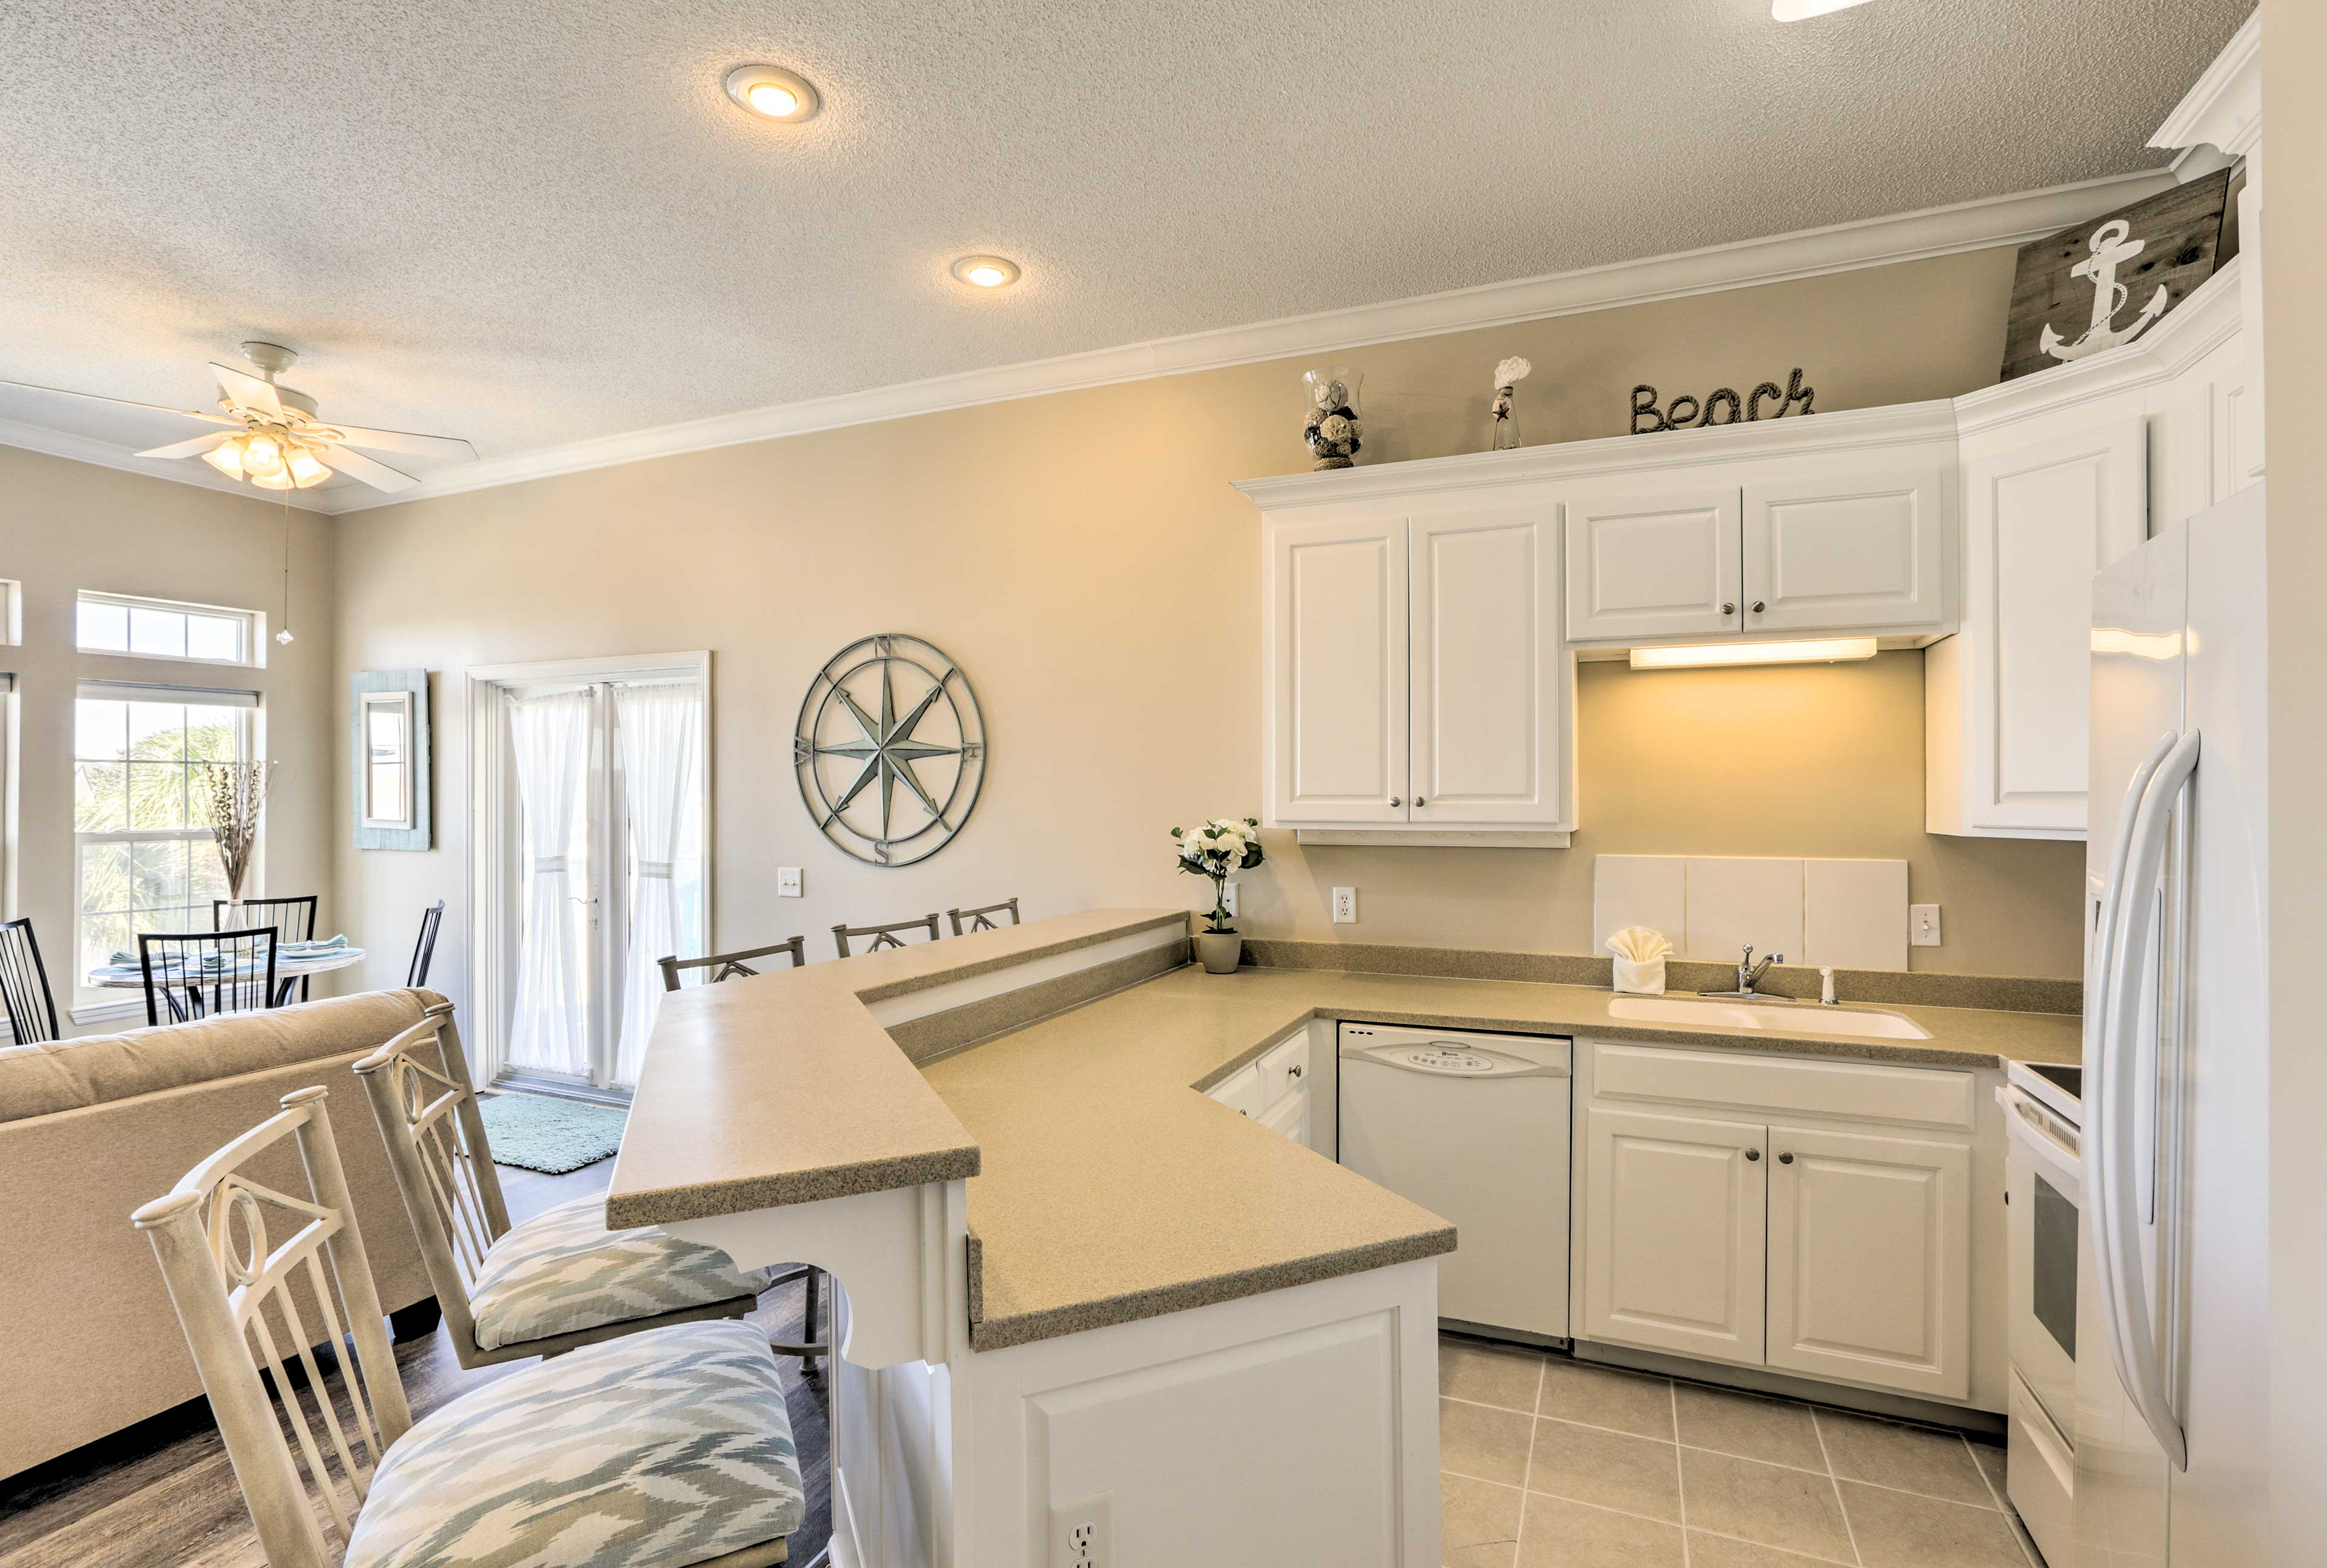 Whip up a 5-star meal in the spacious fully equipped kitchen.